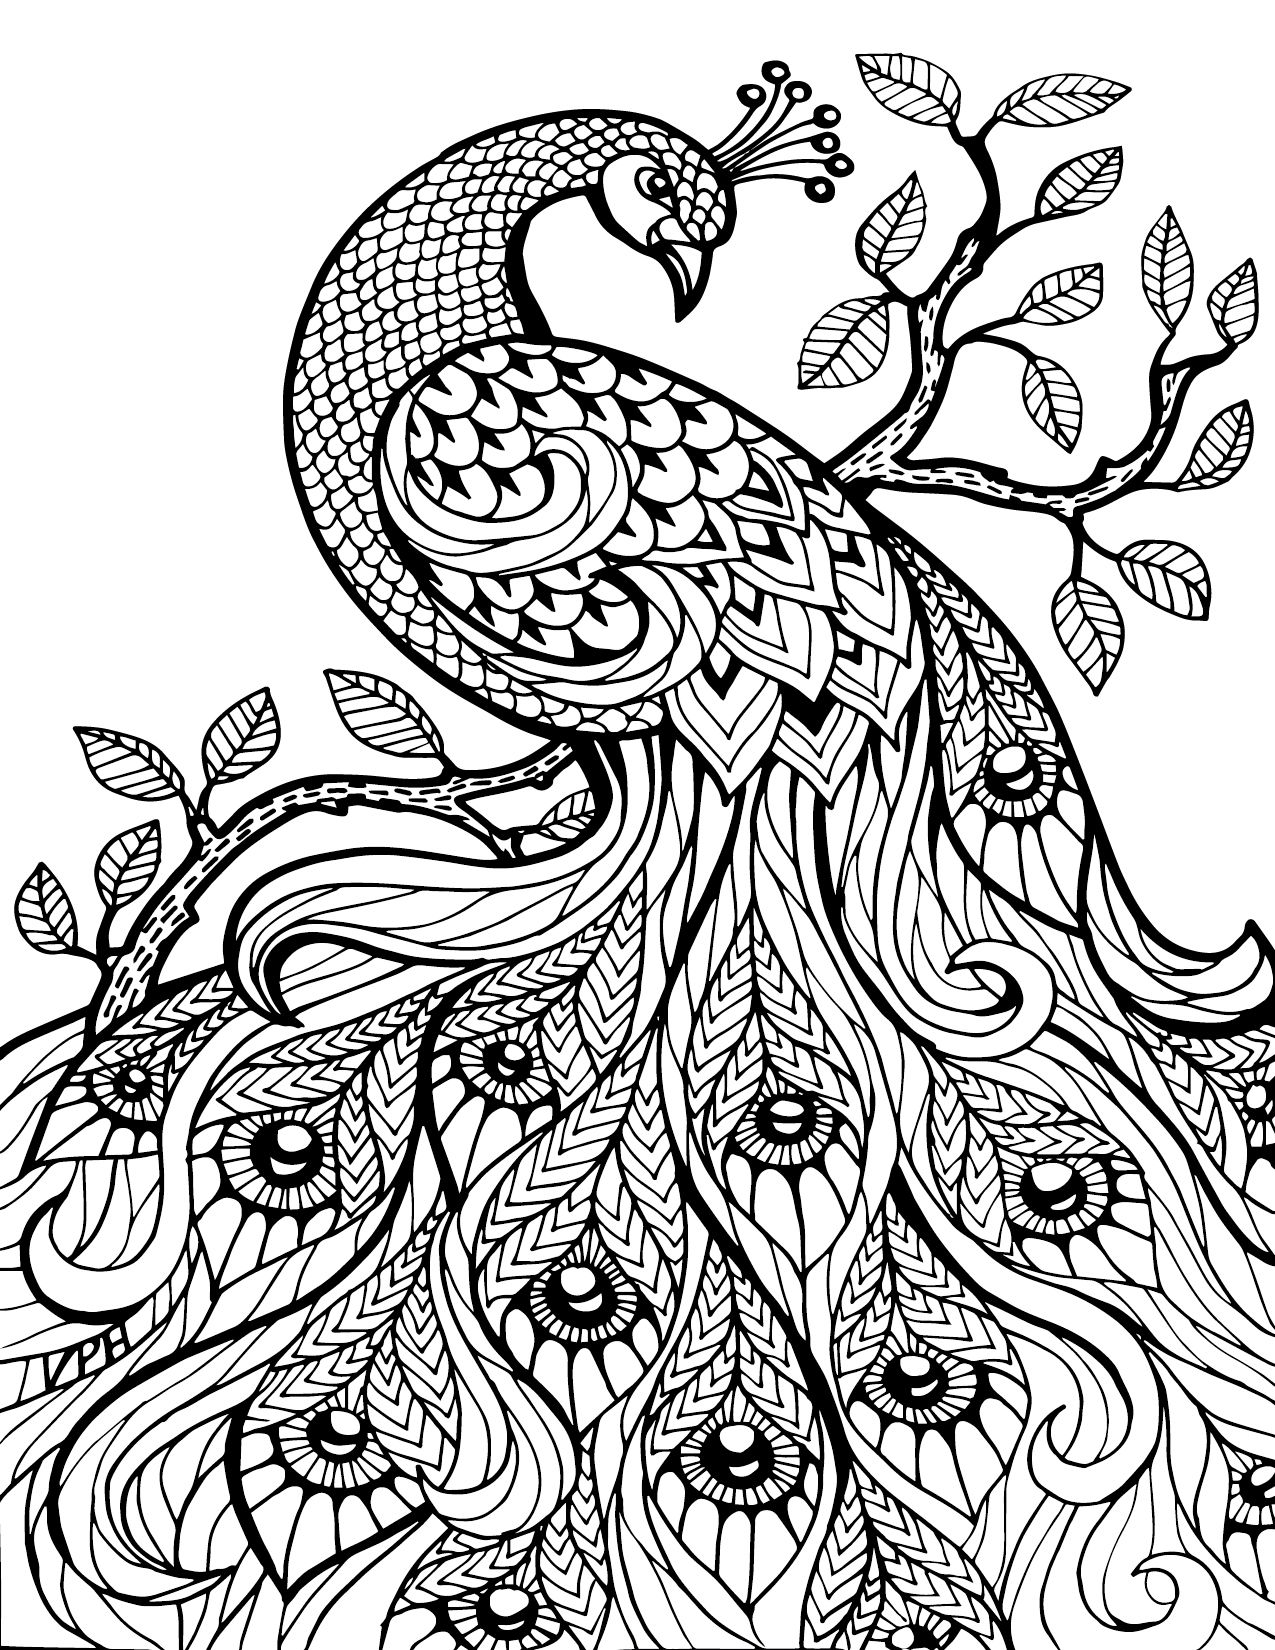 Printable coloring books adults - Free Printable Coloring Pages For Adults Only Image 36 Art Davlin Publishing